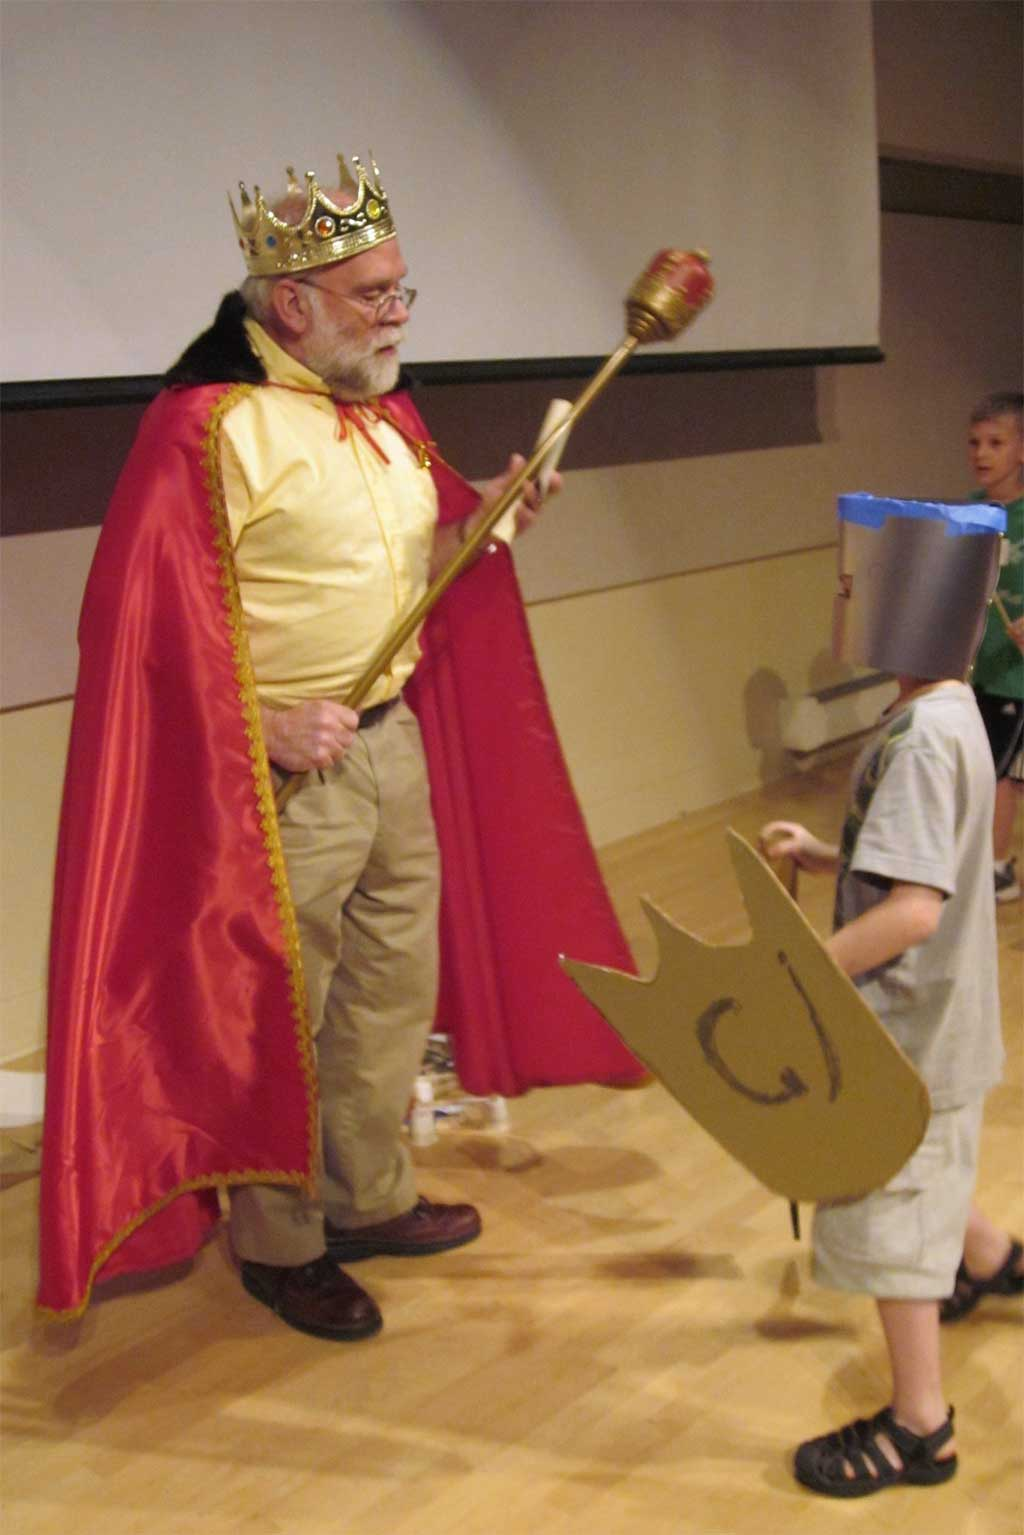 Wayne, dressed as a King, faces a student dressed up as a knight